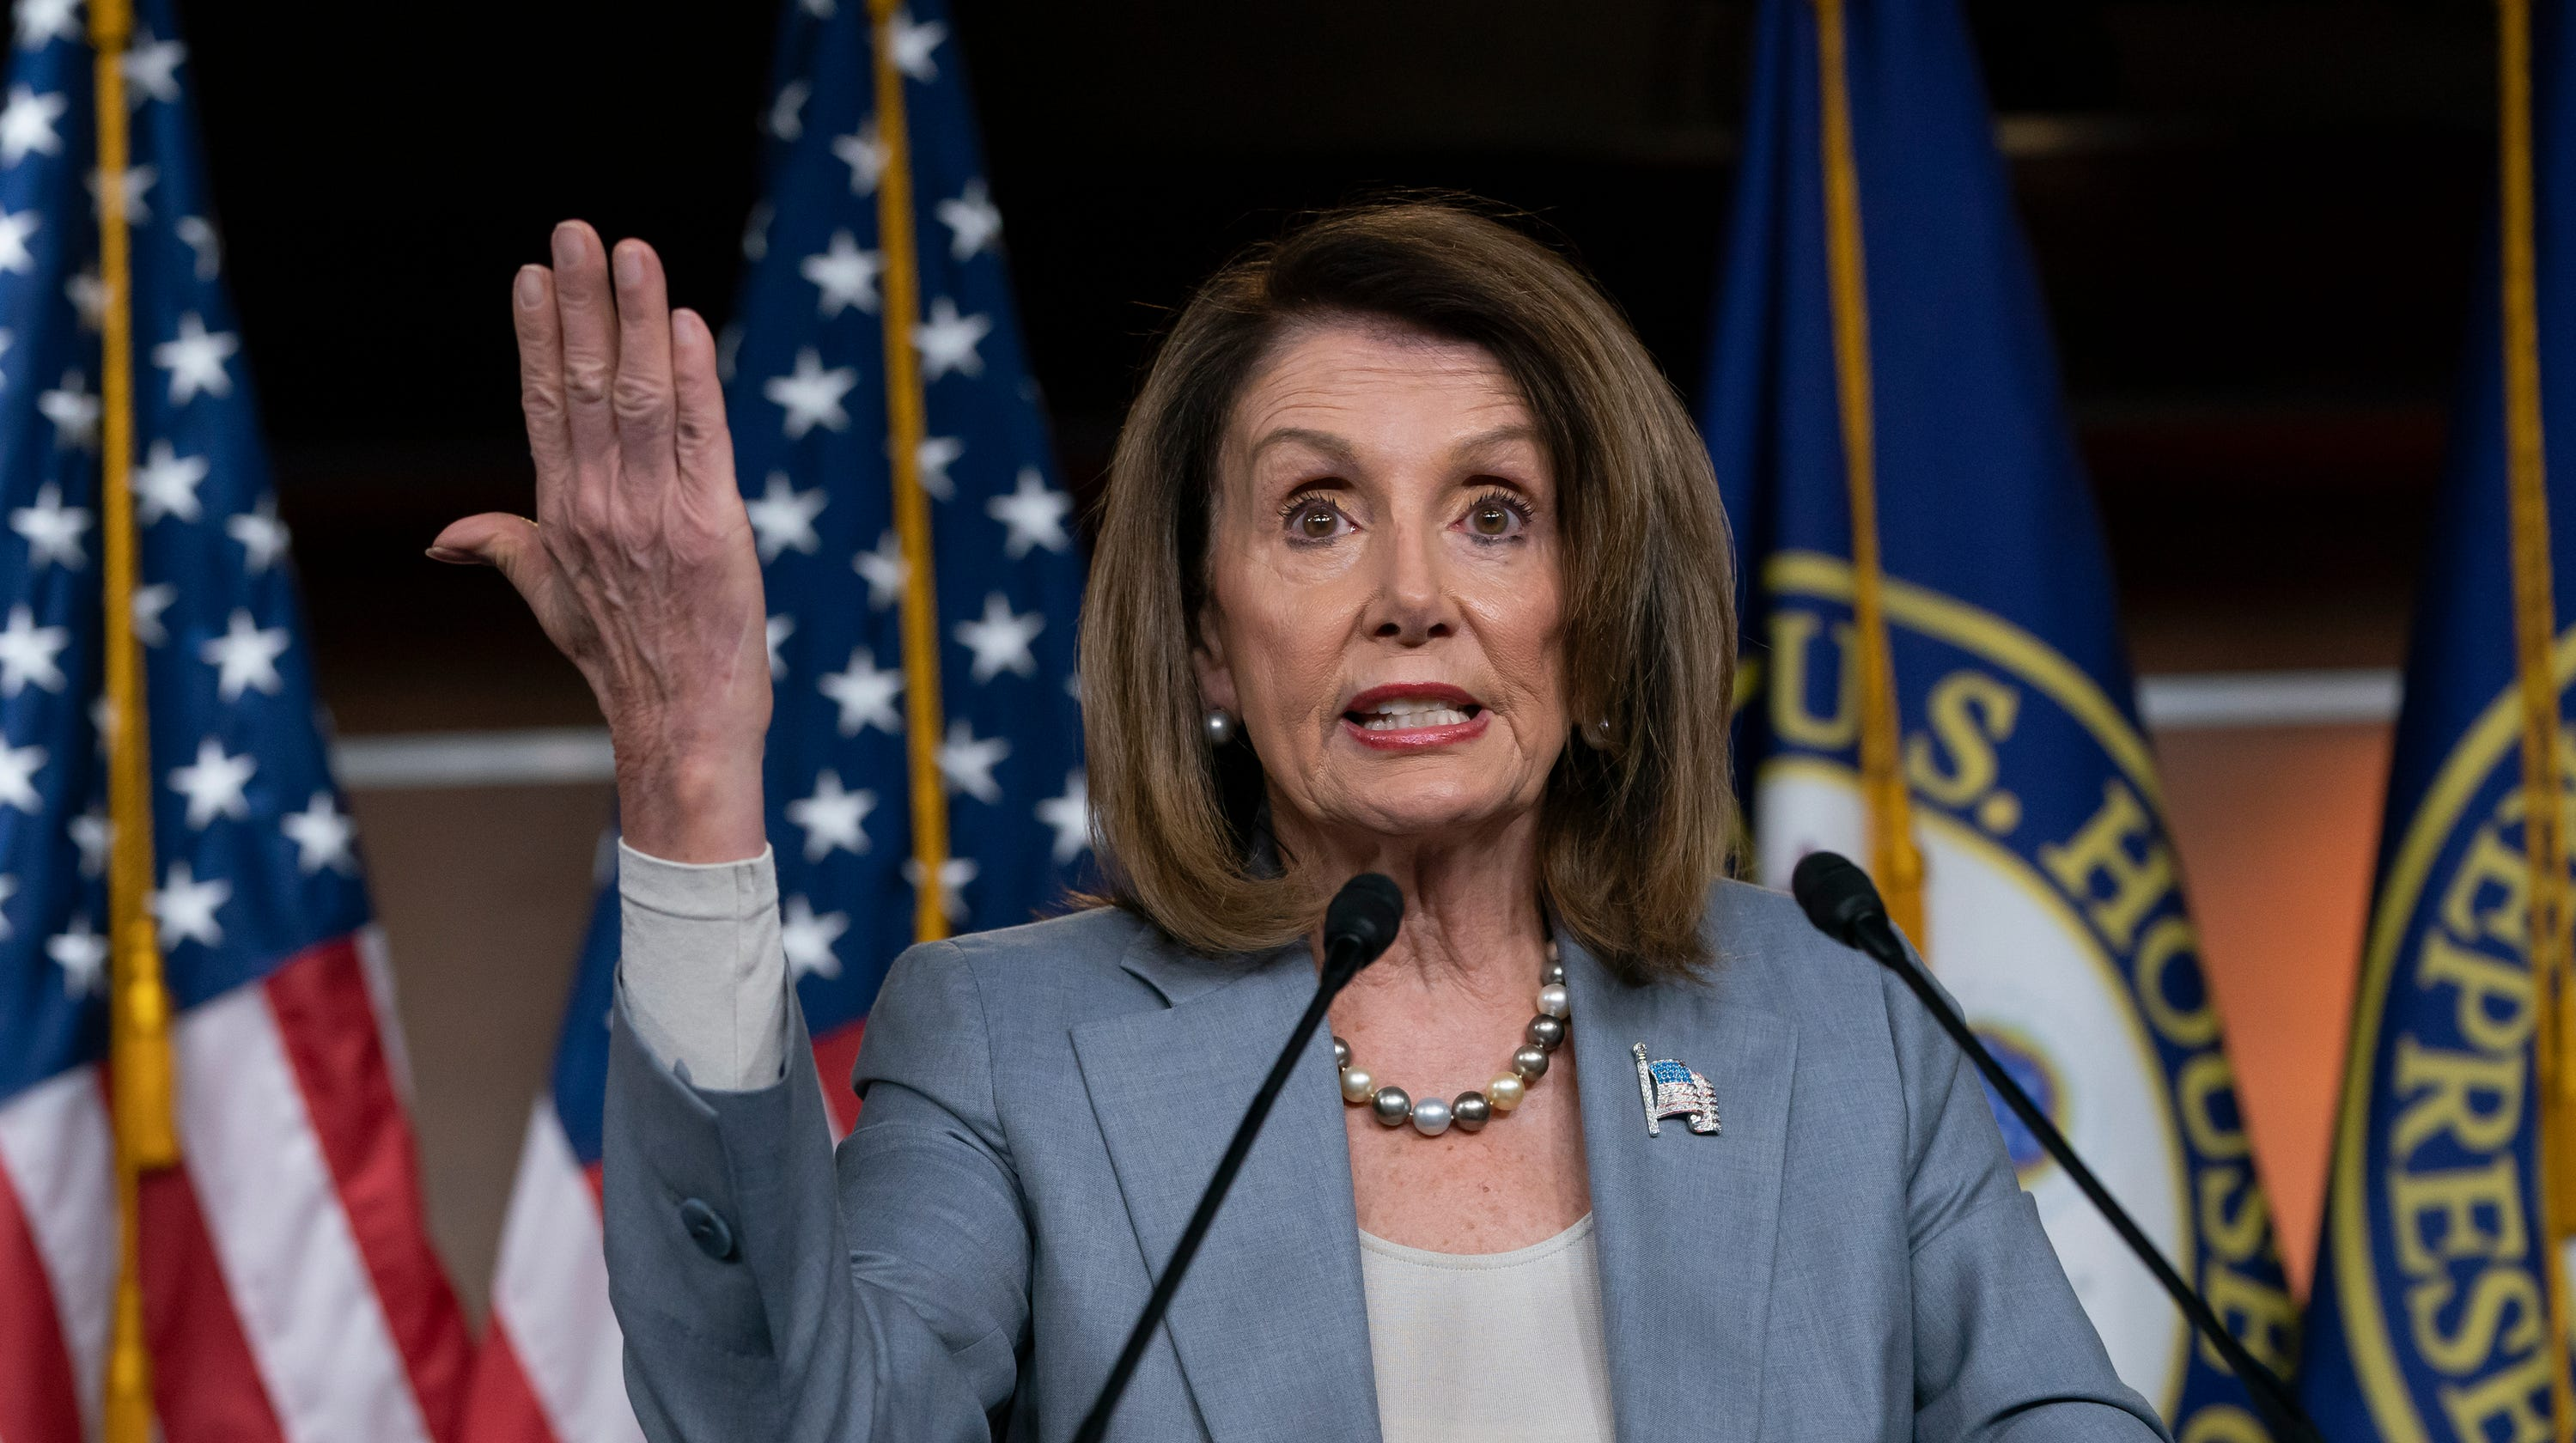 Pelosi slams US for ignoring 'obligations to humanity' in response to photo of drowned migrants - USA TODAY image